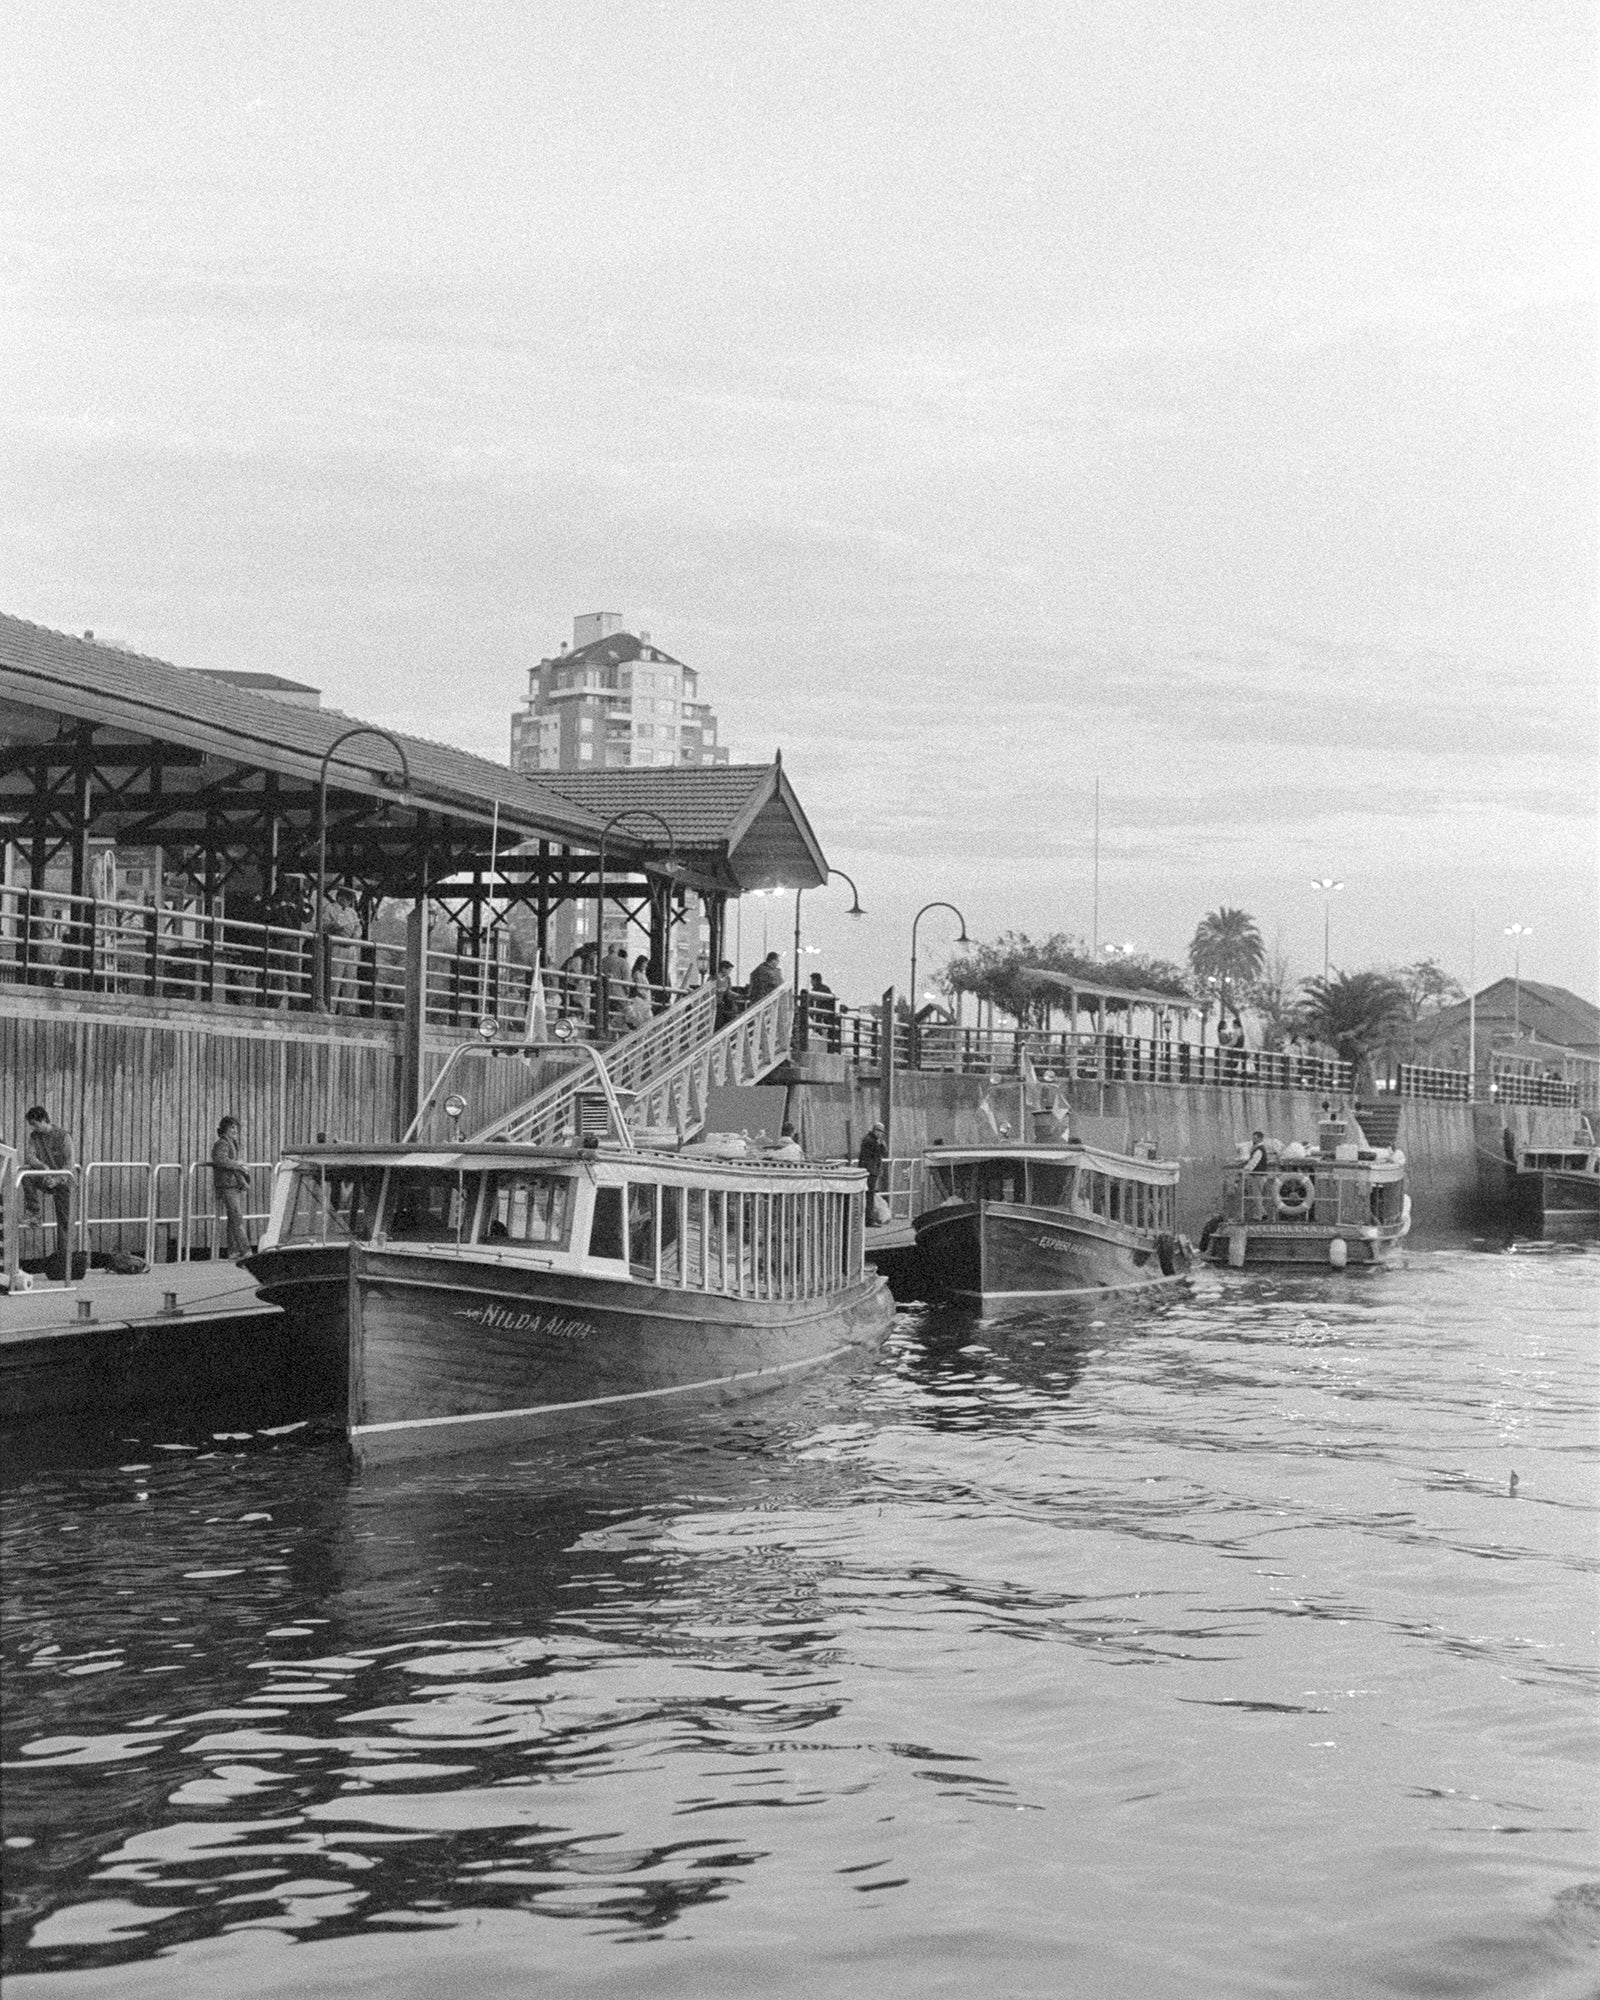 Evening Riverboats Black and White Photographic Print